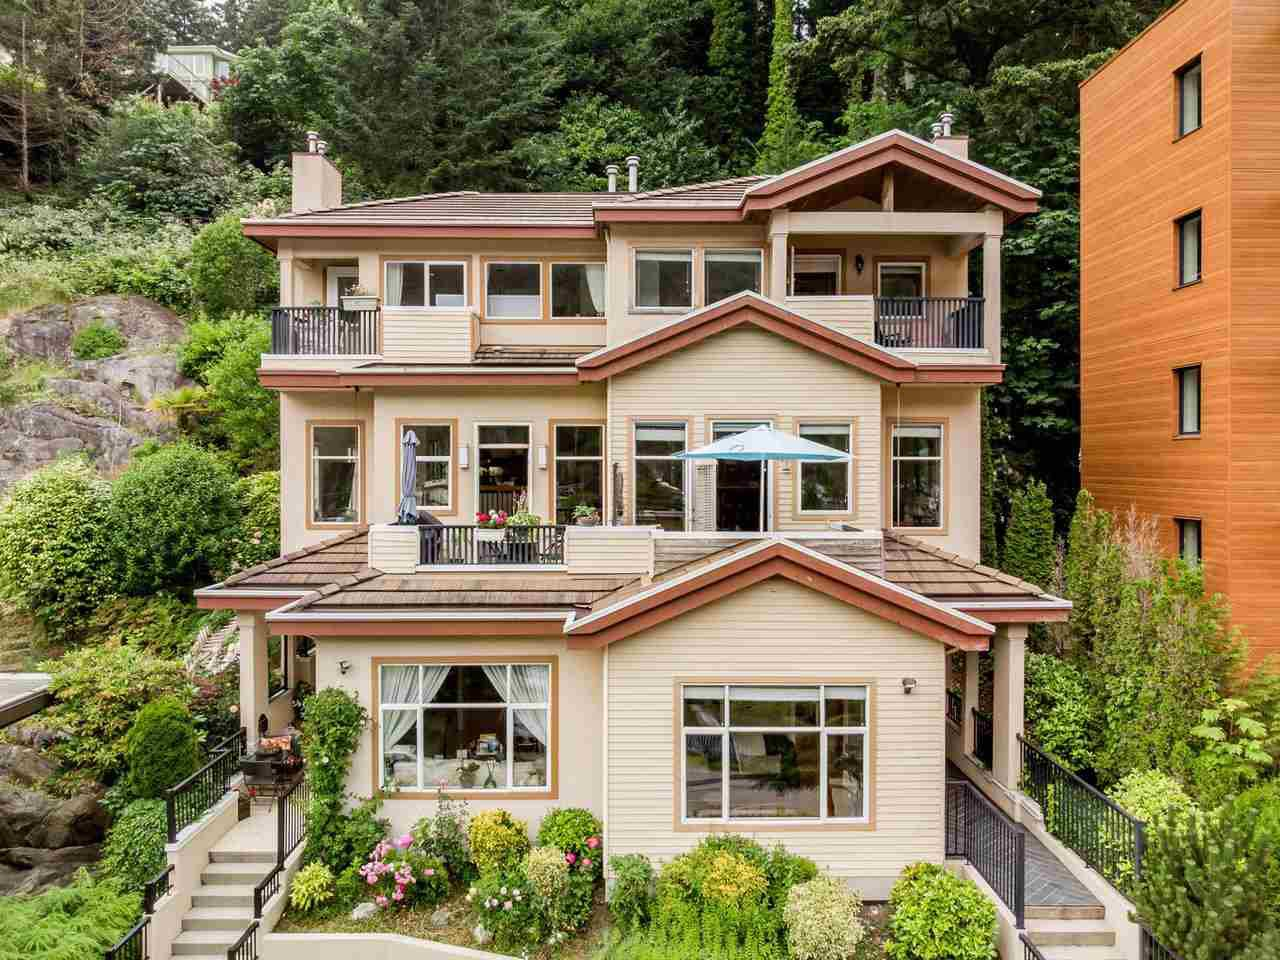 Main Photo: 6639 NELSON Avenue in West Vancouver: Horseshoe Bay WV House 1/2 Duplex for sale : MLS®# R2477461